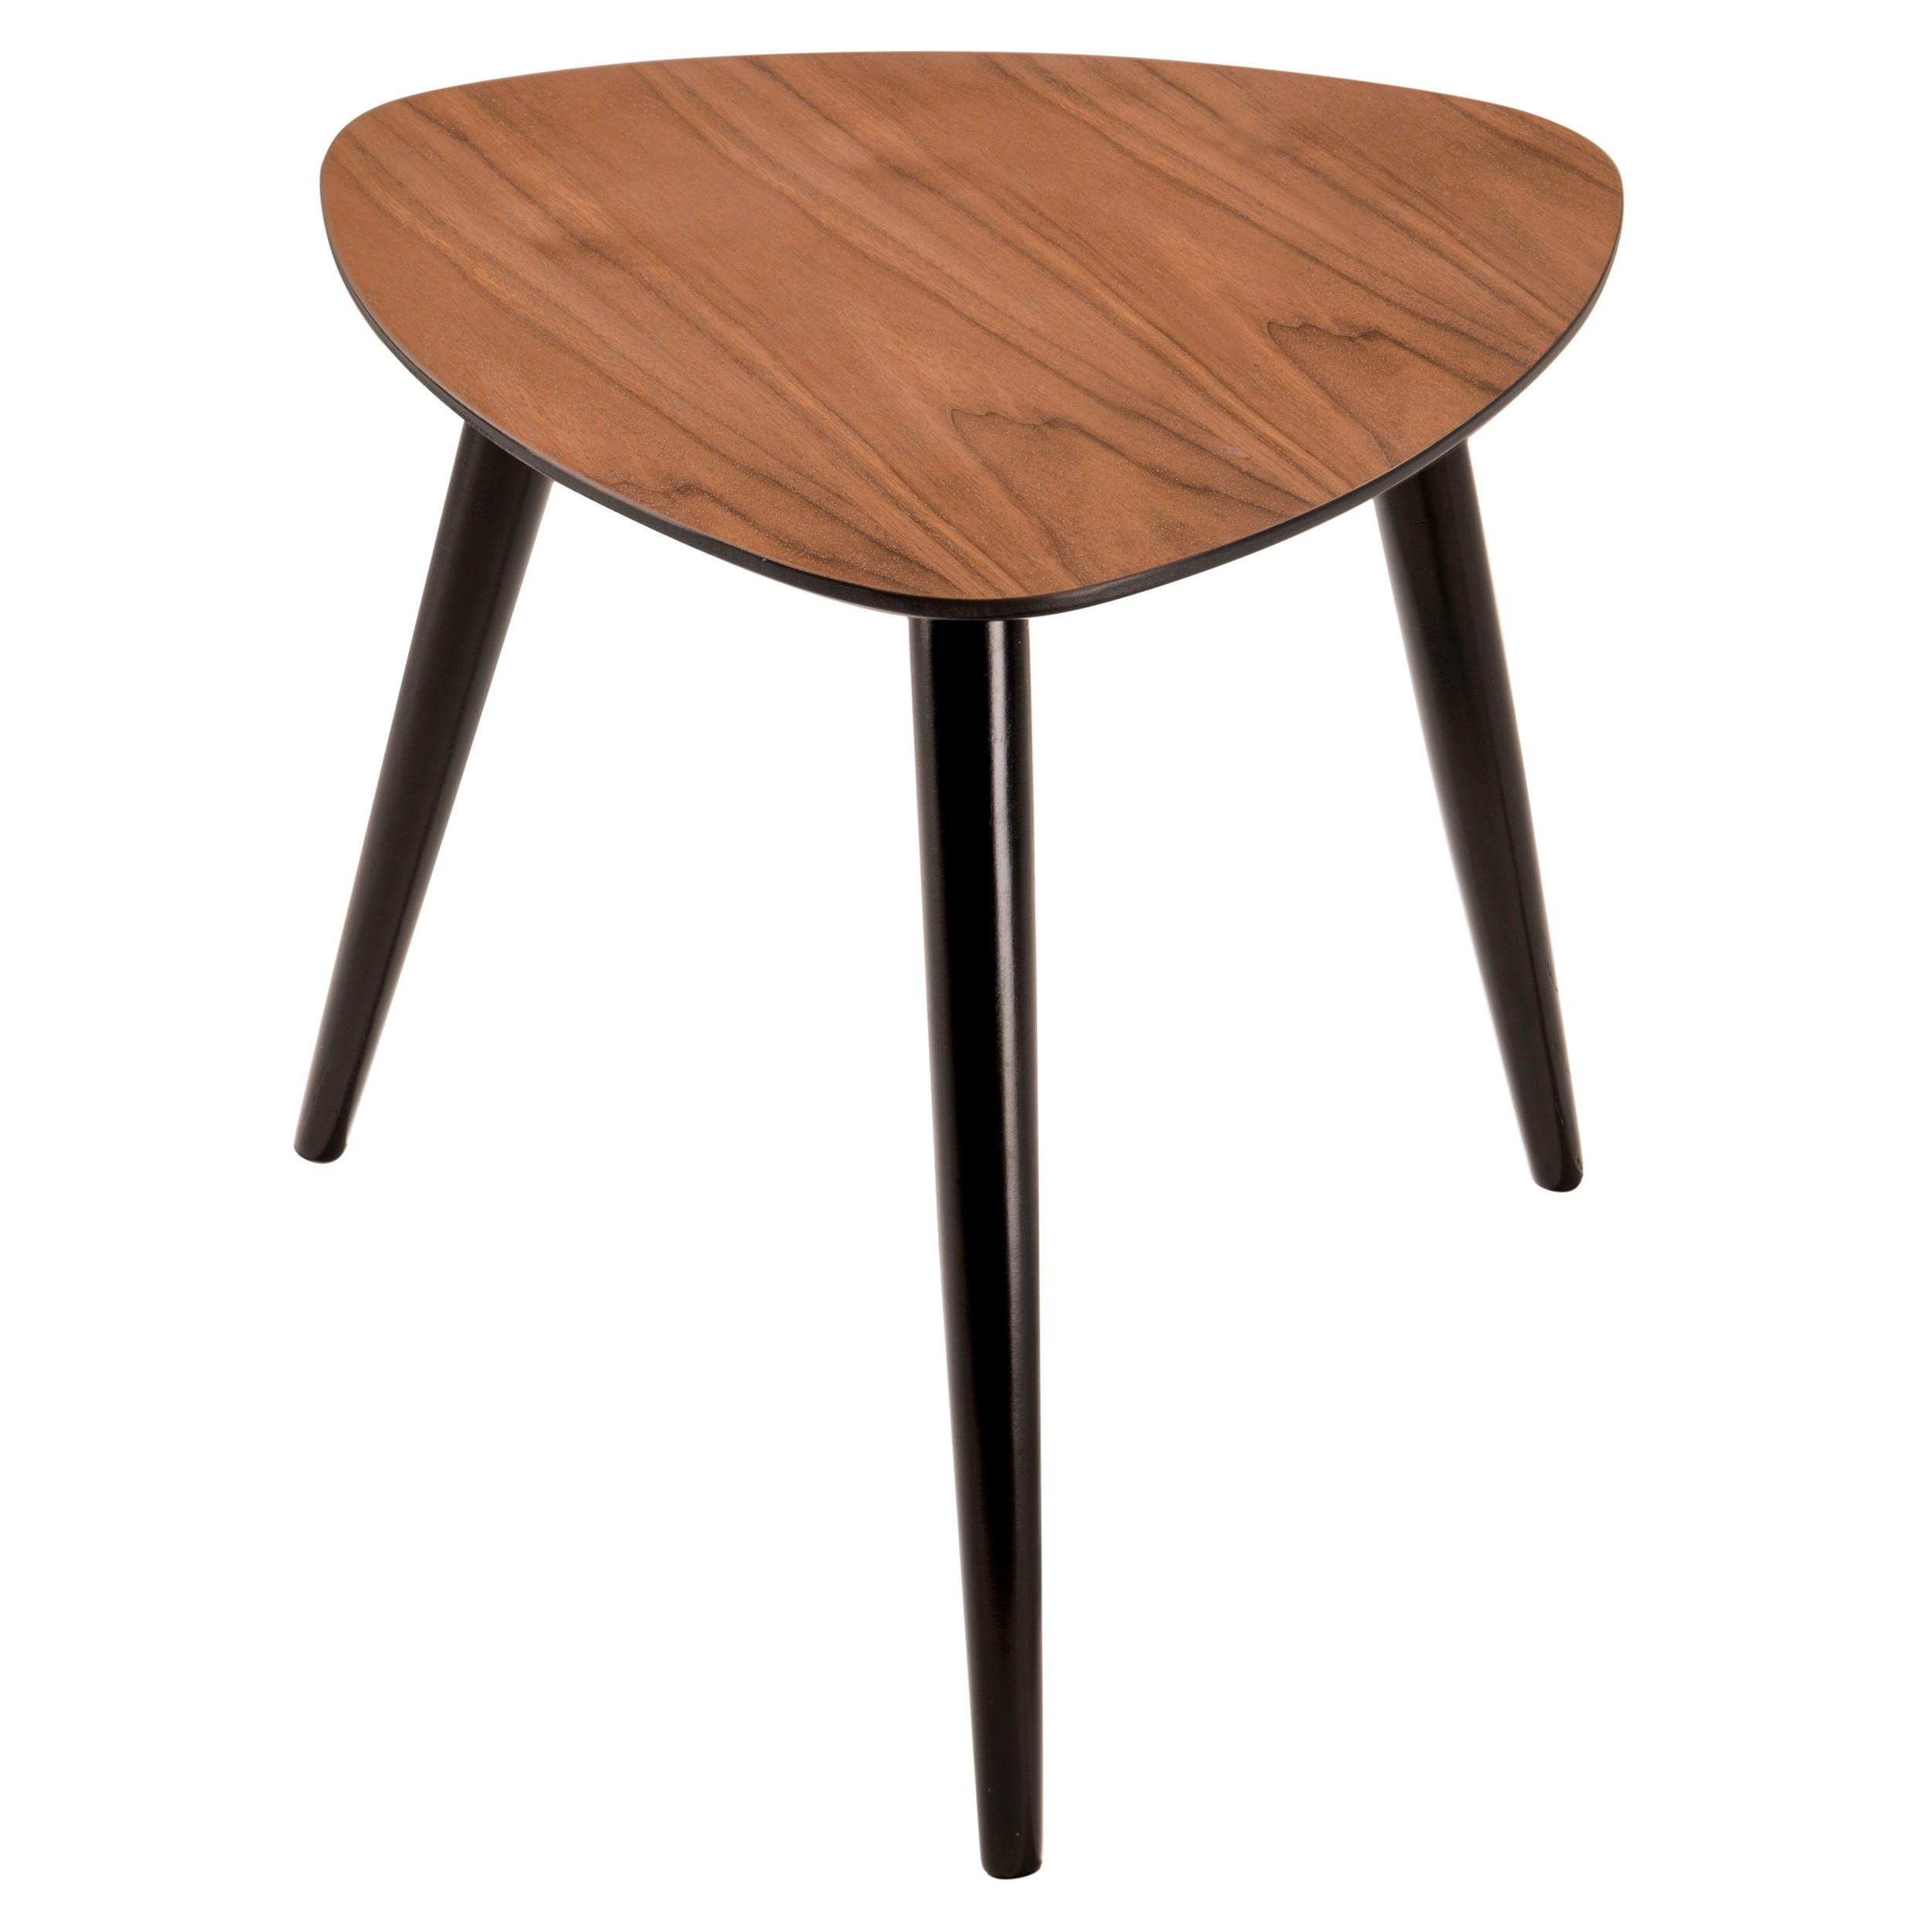 Table basse scandinave en bois lot de 2 commandez nos for Table basse scandinave lot de 2